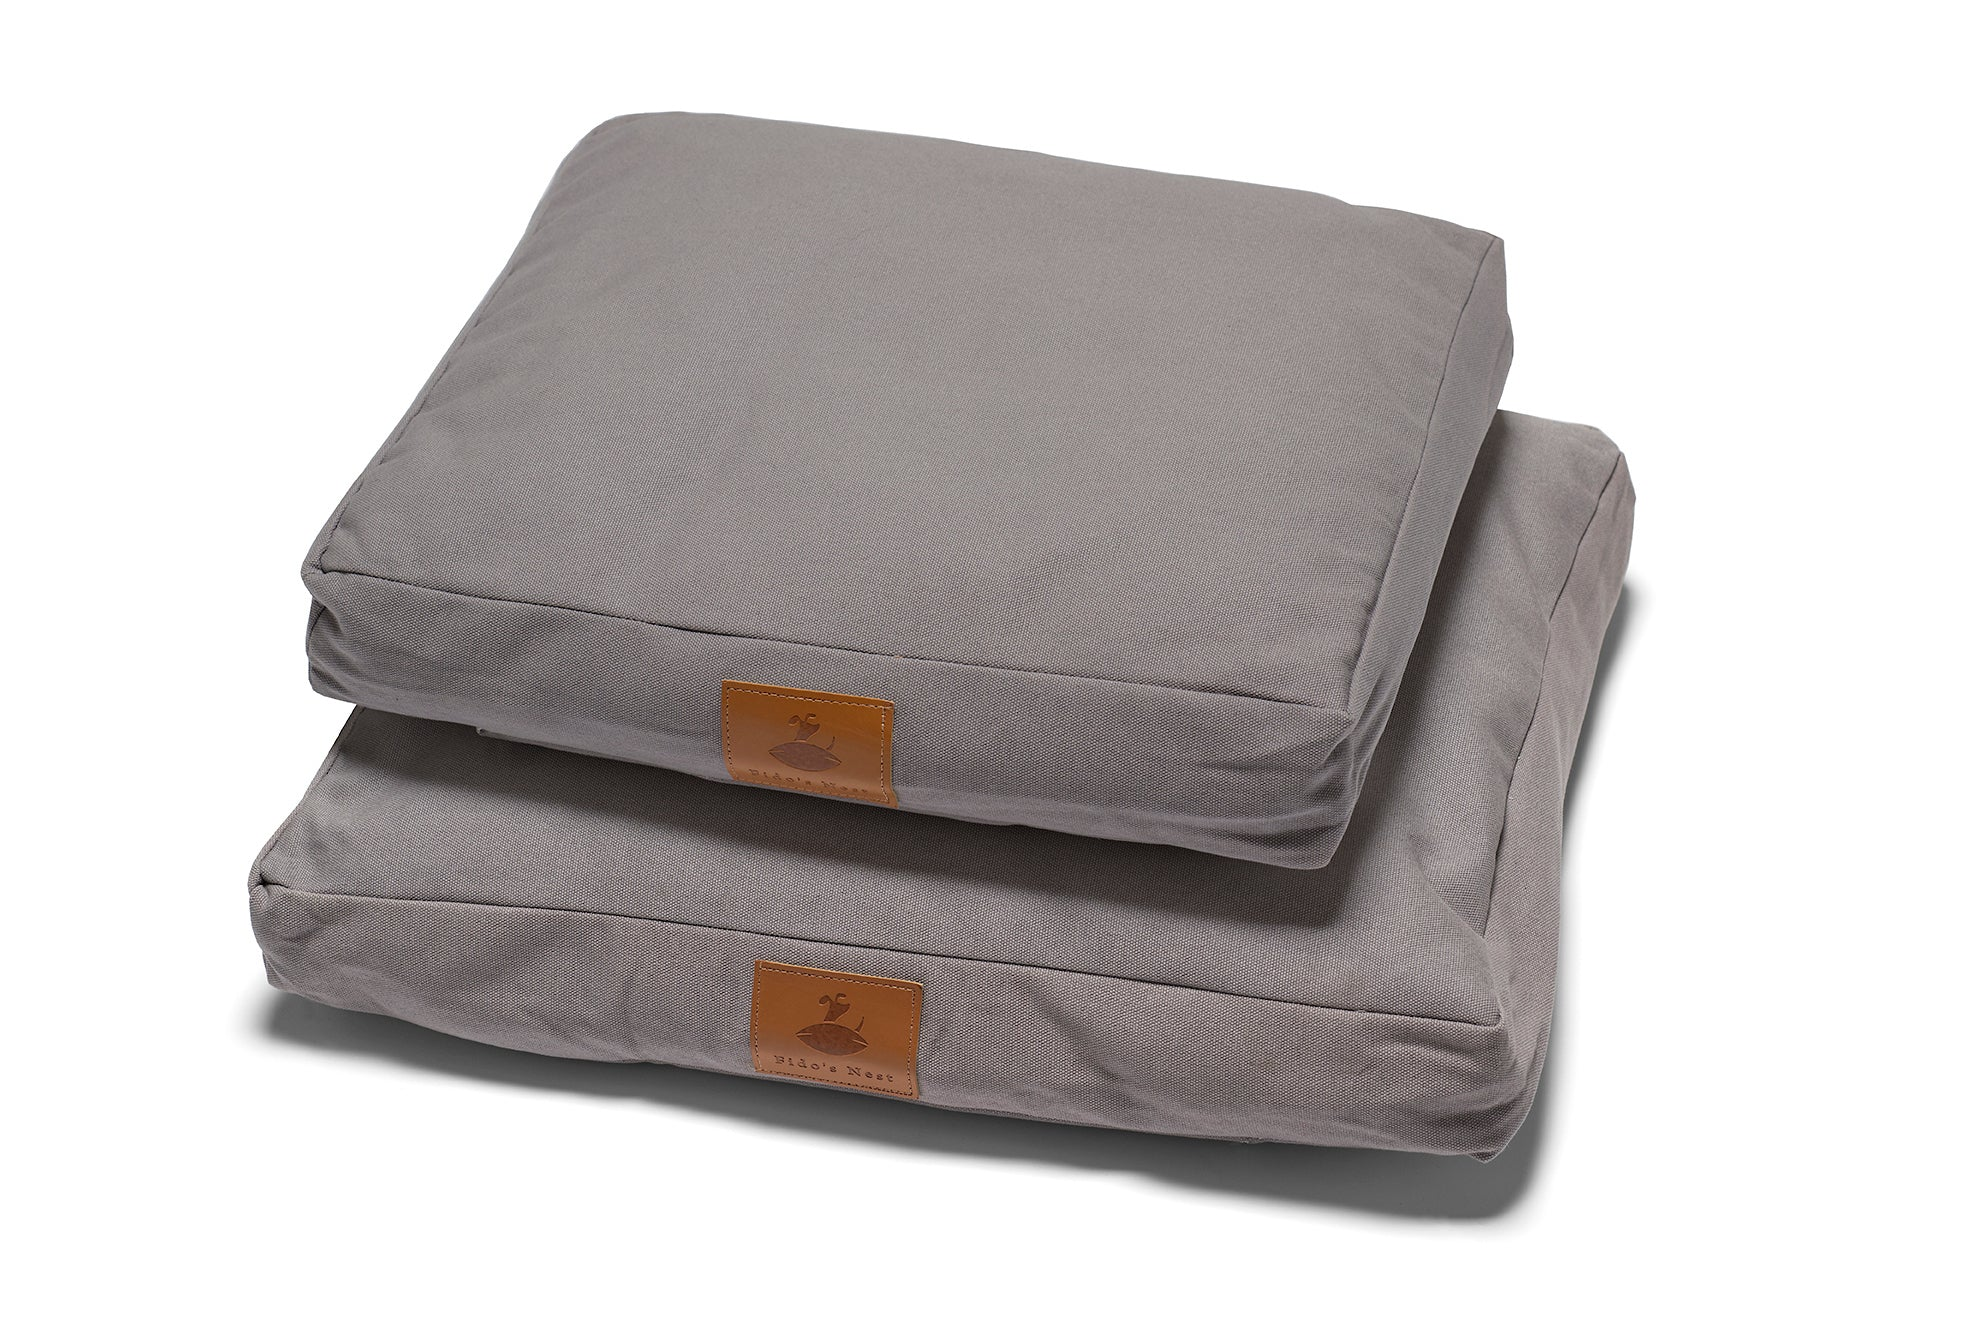 Fido's Nest | Luxury modern pillow dog bed. Eco-friendly, hypoallergenic, durable and machine washable. Choice of wool or hollow-fibre filling. In Cool Grey.